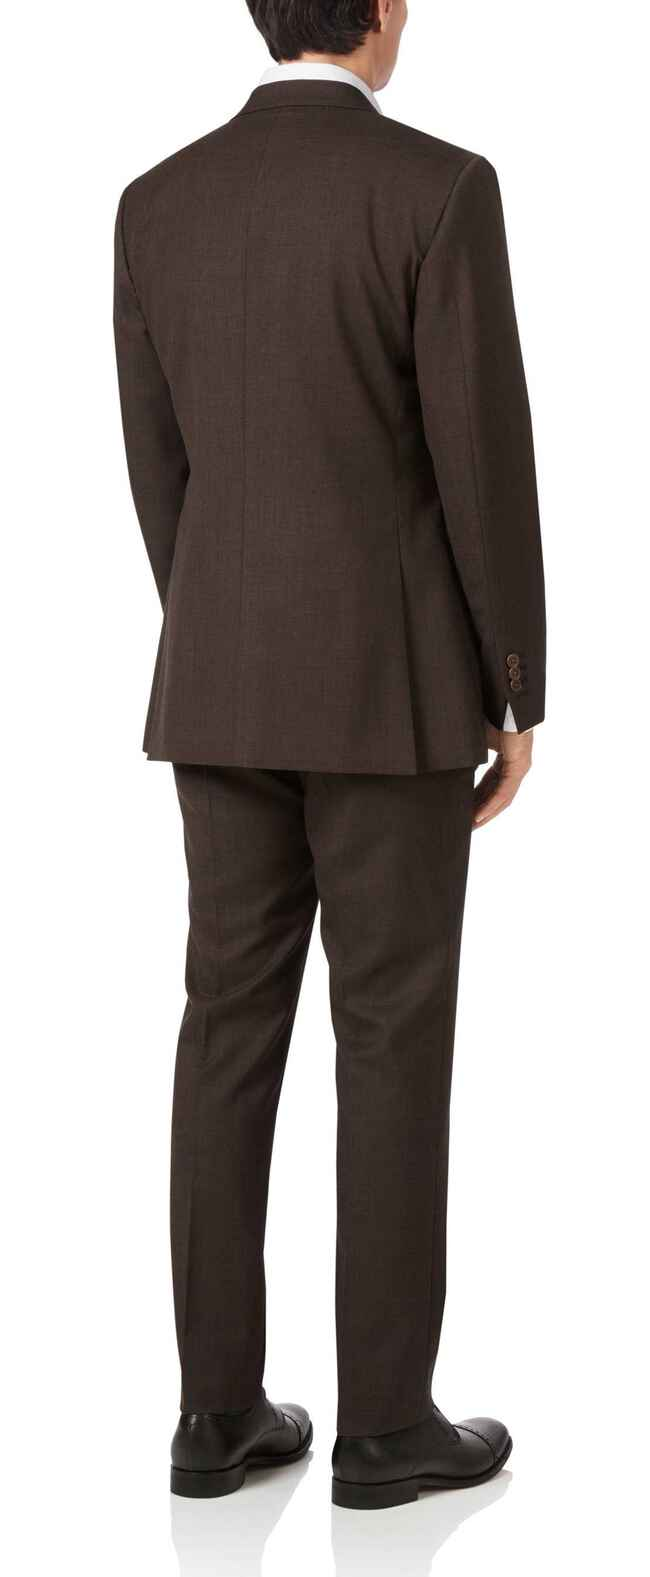 Chocolate slim fit sharkskin travel suit